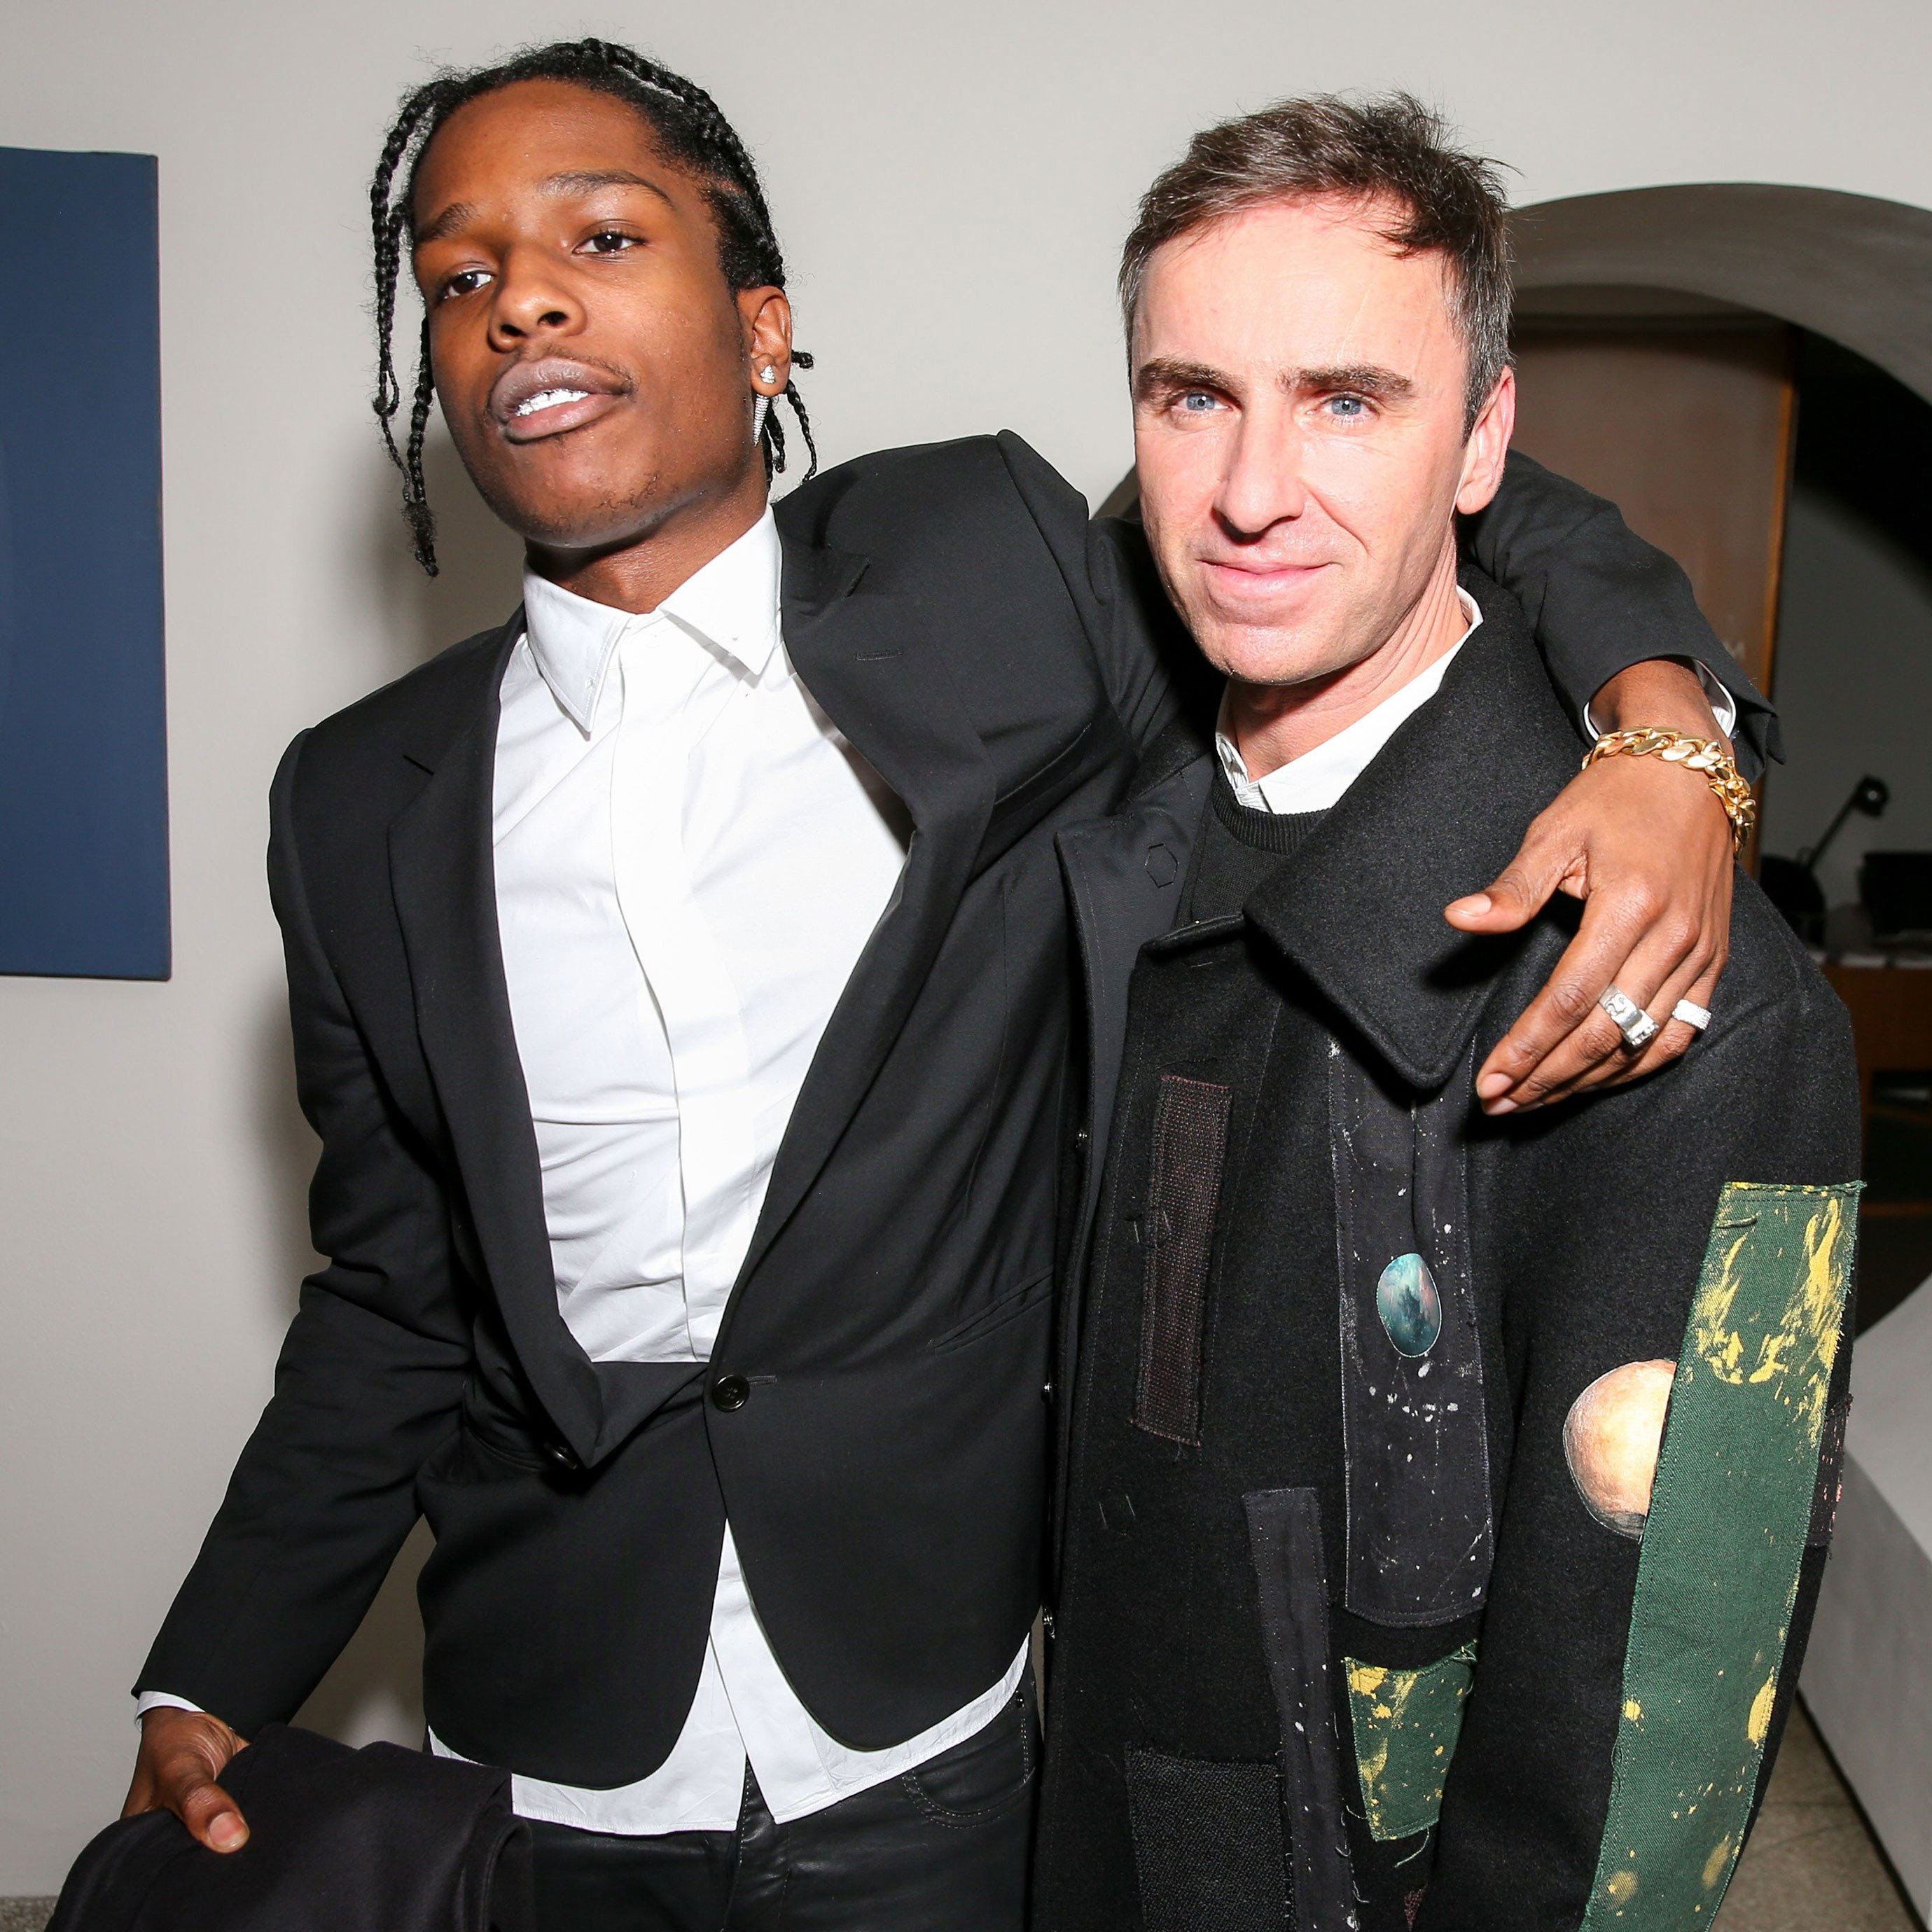 Raf Simons Talks To The Wall Street Journal About Underwear And A$AP Rocky